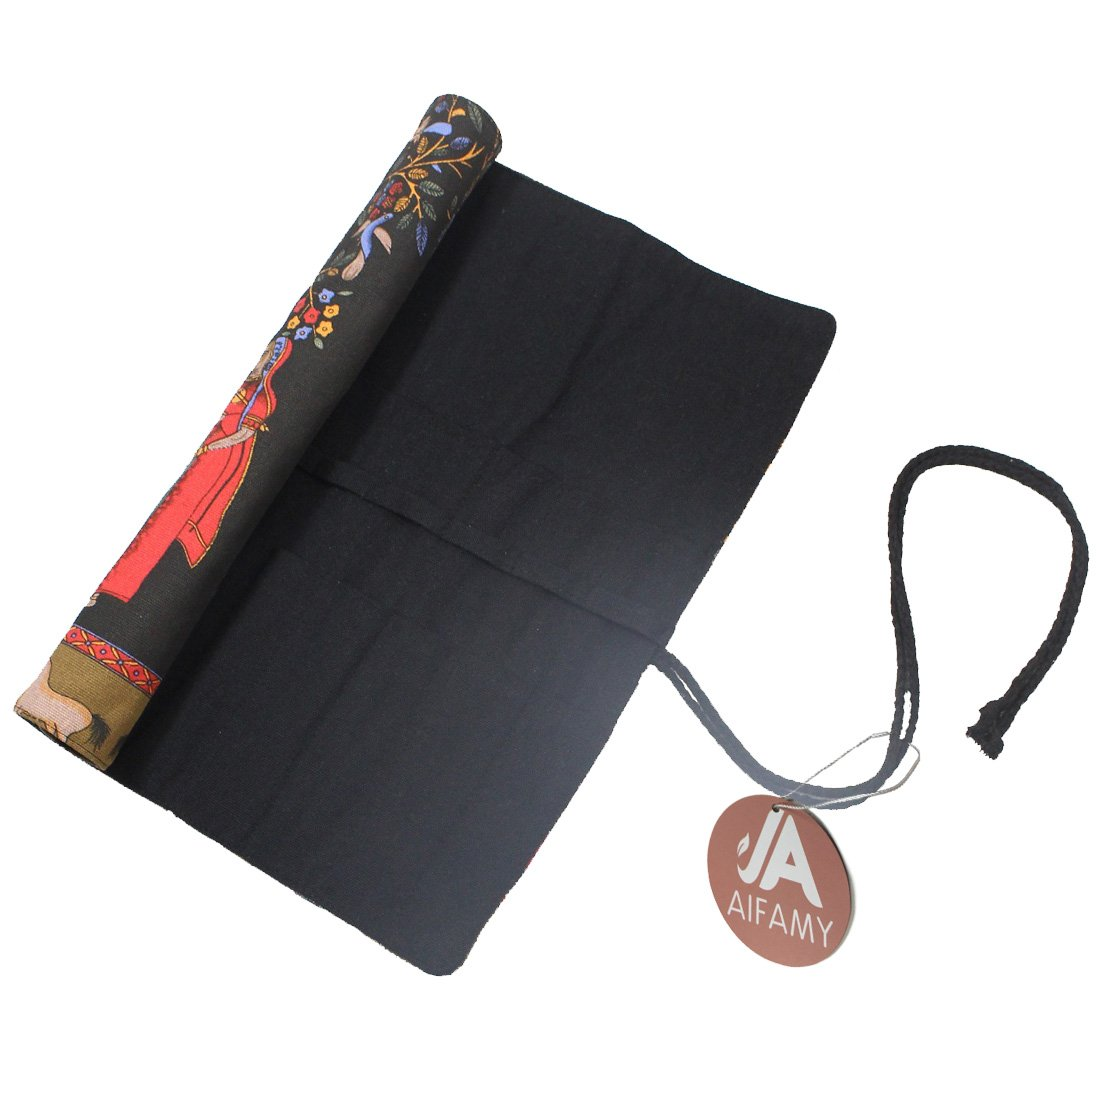 15 Inches Artist Paint Brushes Case Roll Up Pen Holder Canvas Pouch Bag (Ancient Egyptian Style without Brushes) A AIFAMY 4336938412